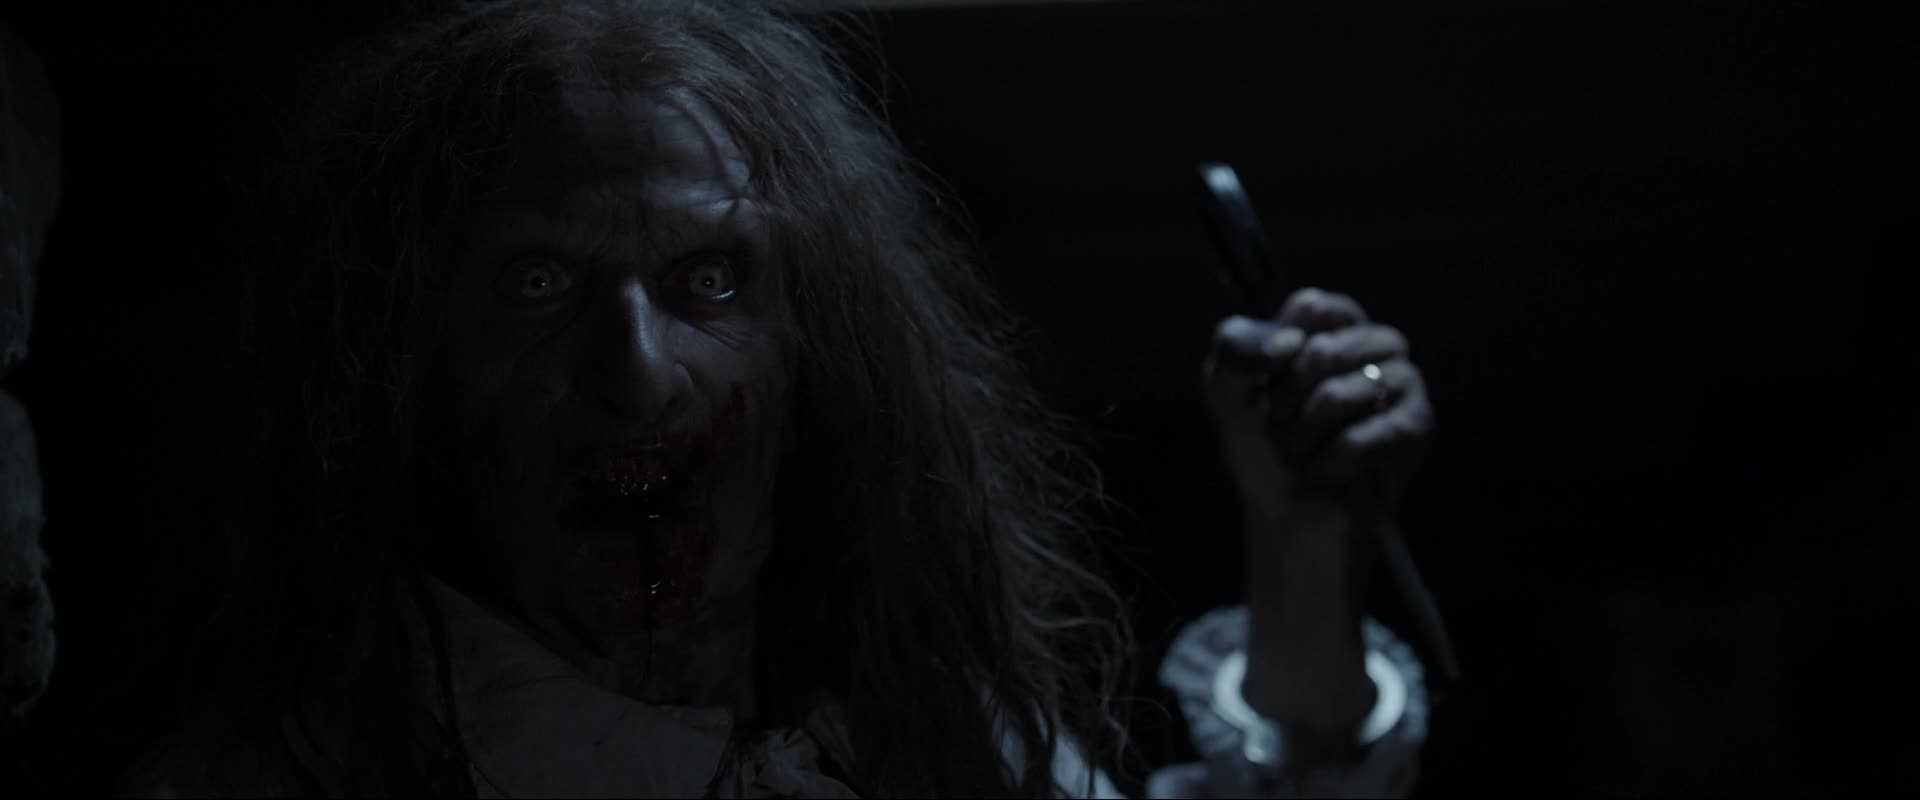 The witch who sacrificed her baby and then herself to the devil in the movie the conjuring.